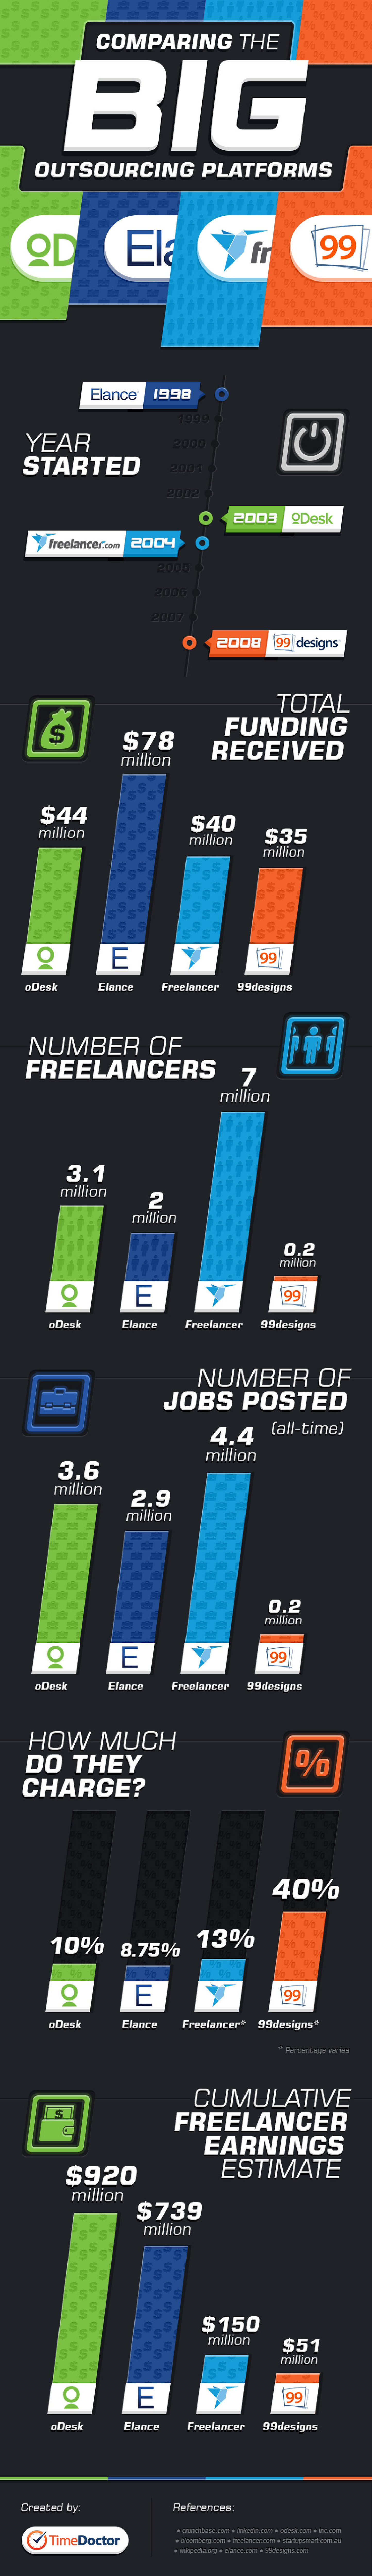 oDesk vs Elance vs Freelancer  Infographic